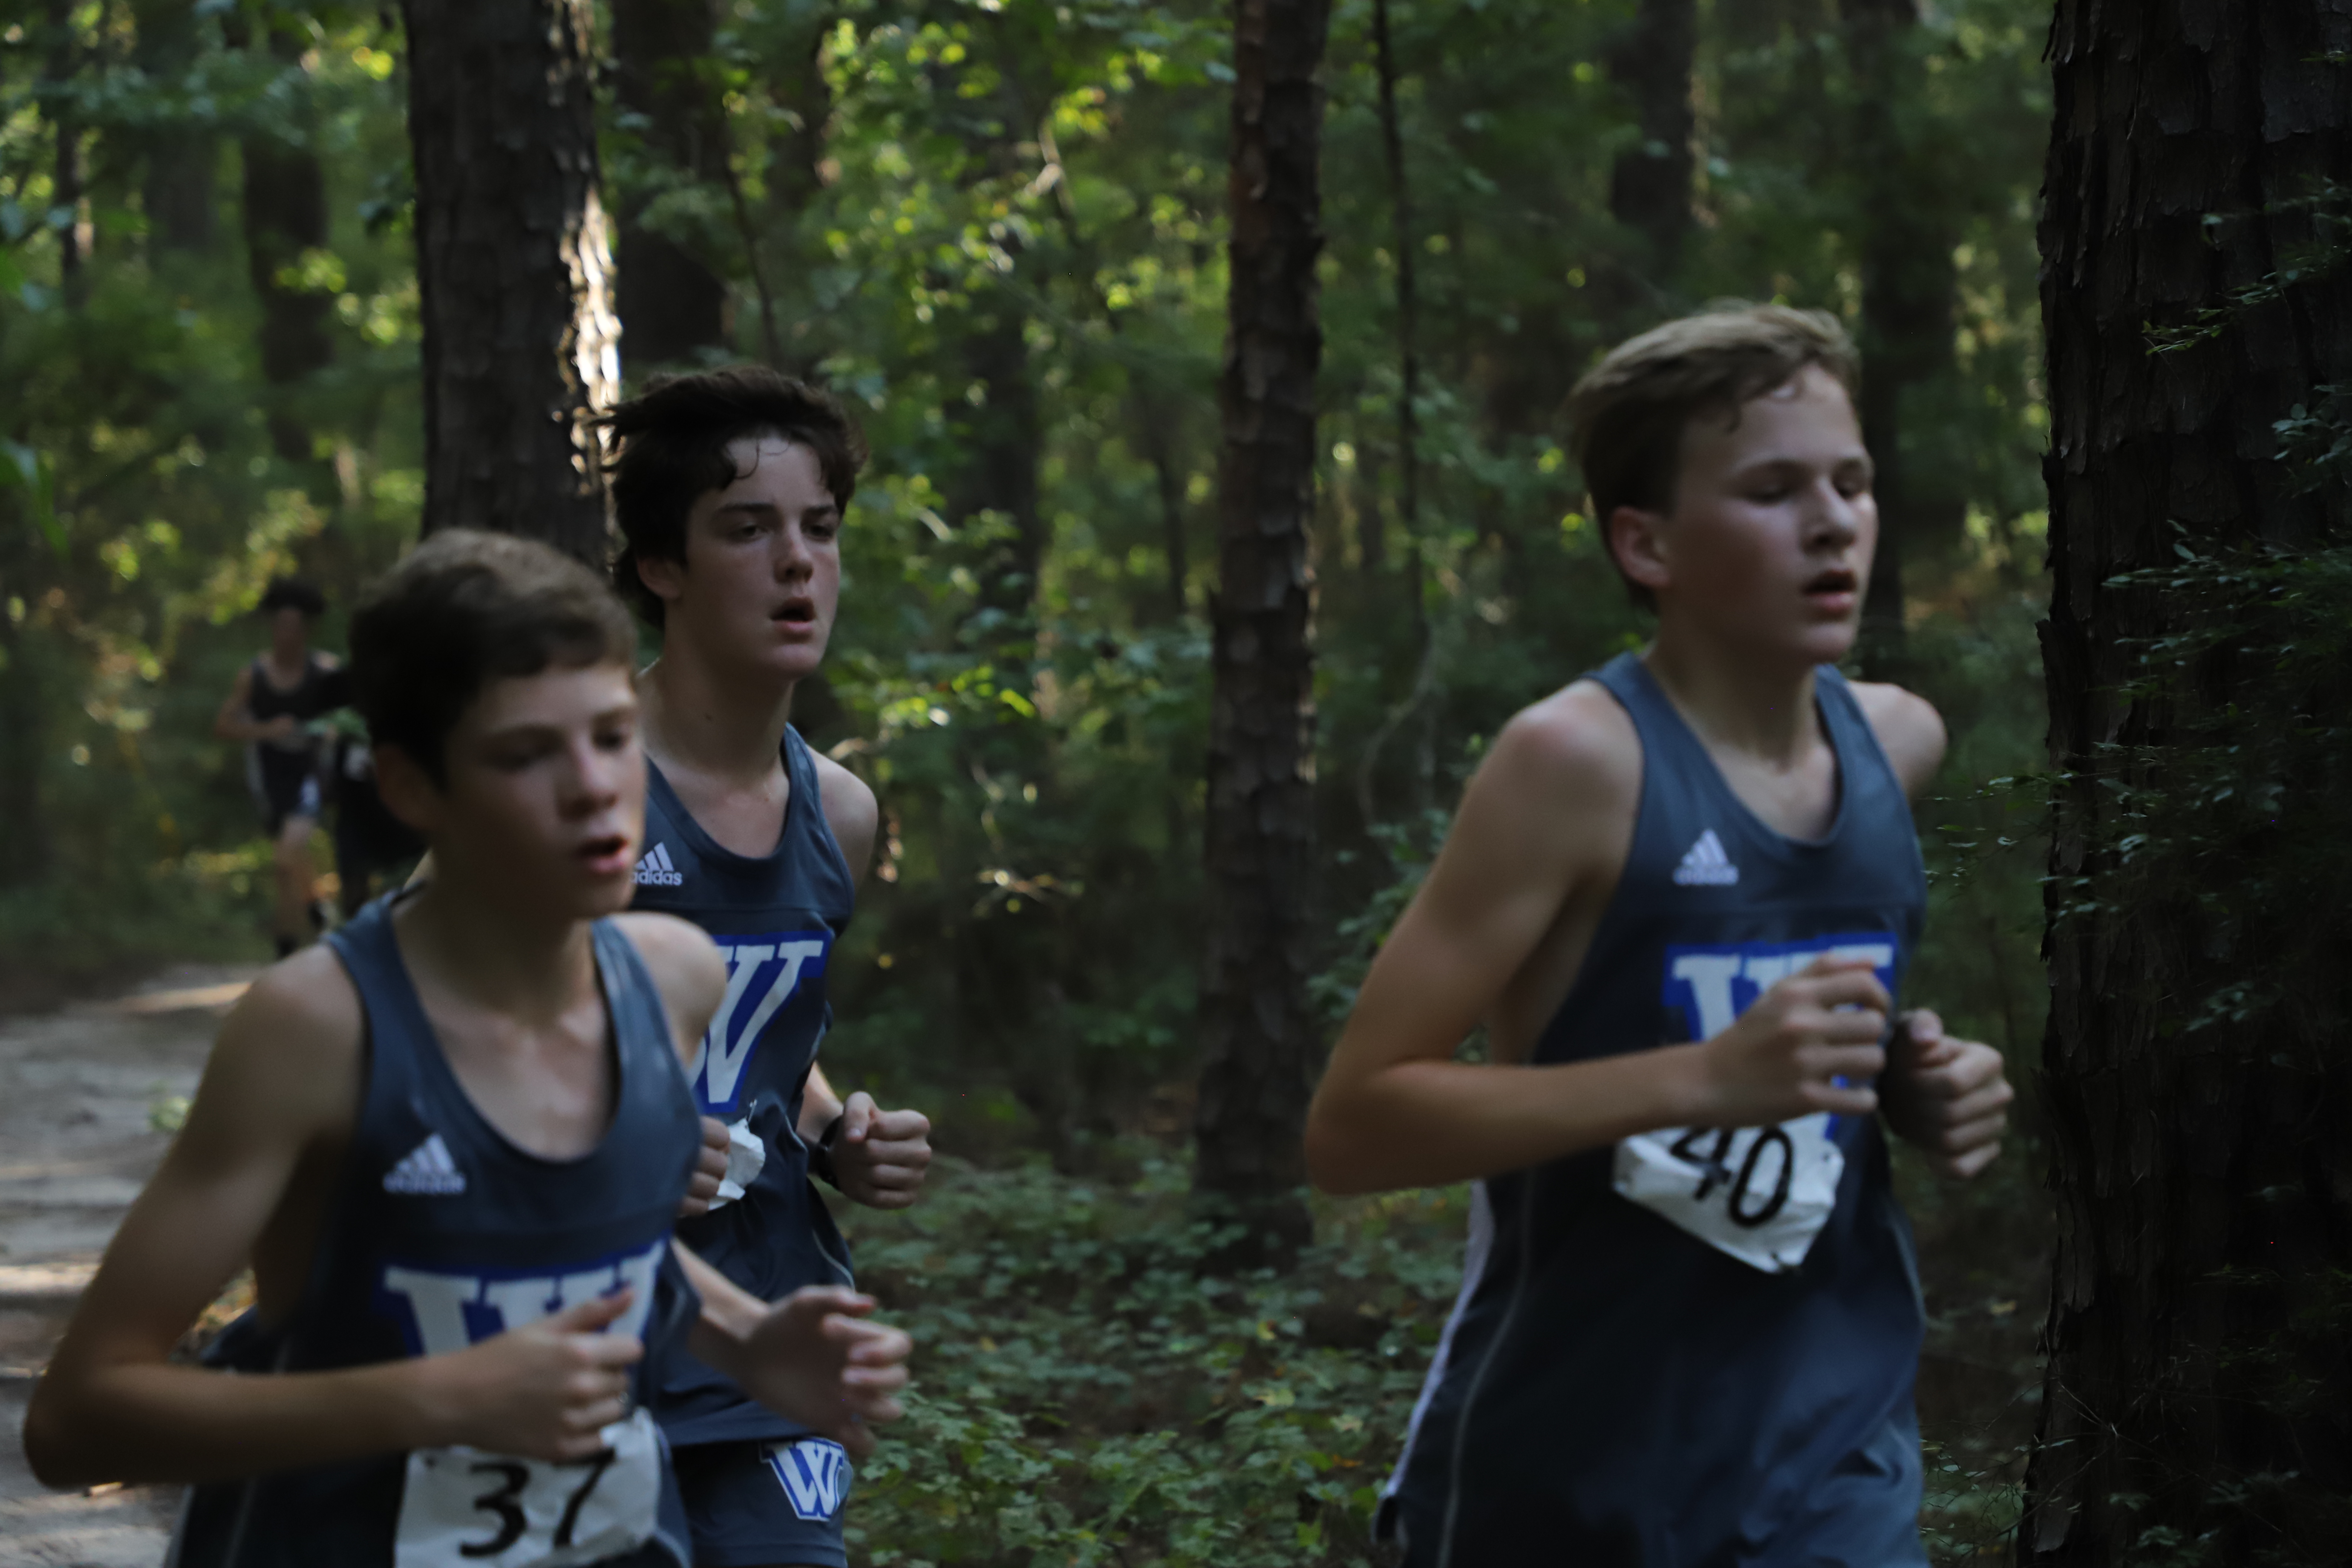 Athletics Photo: Cross Country | Westminster